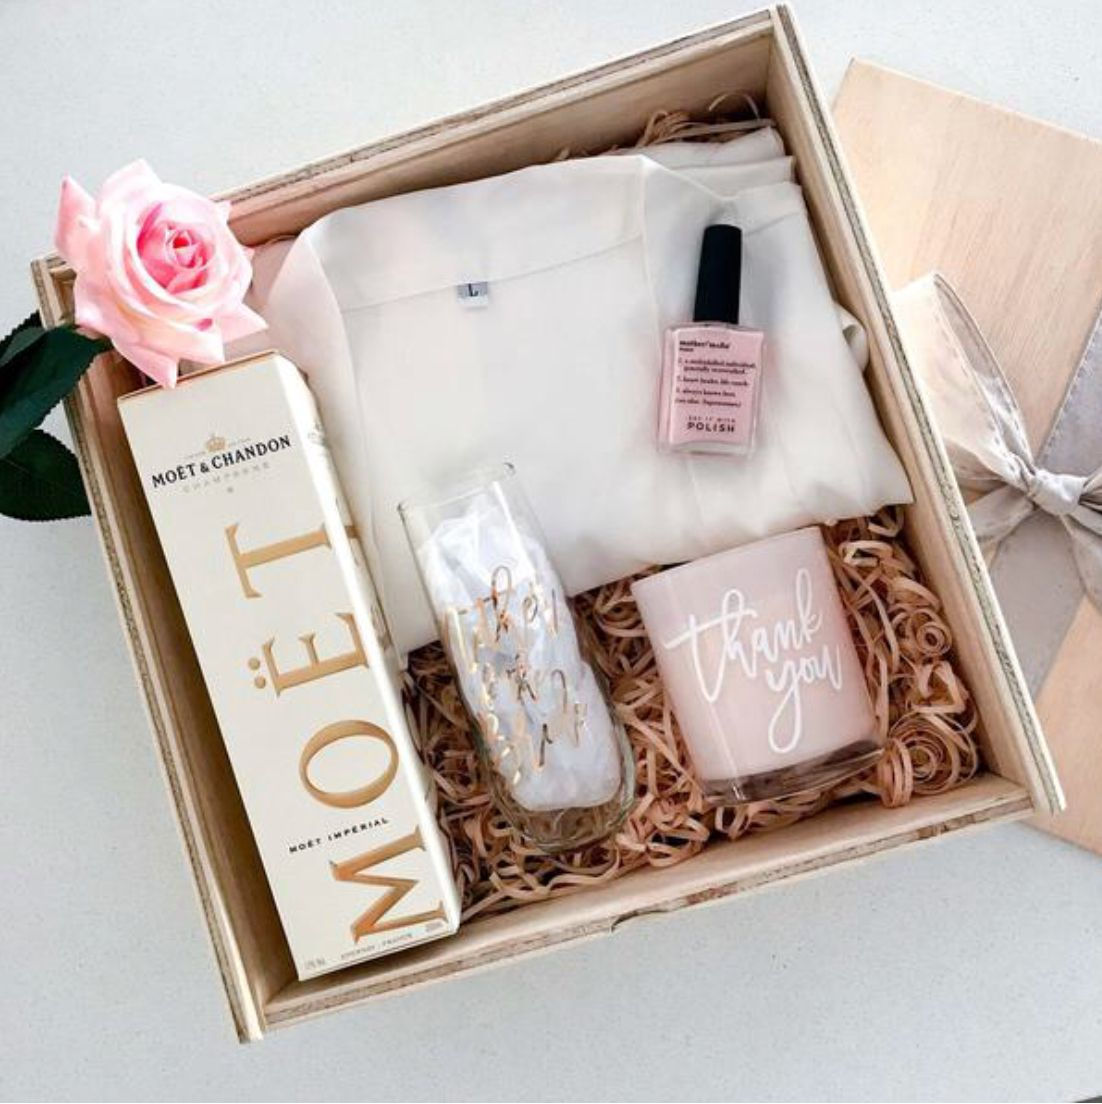 Mother Of The Bride Hamper Bride Gifts Creative Bridal Shower Gifts Bridesmaid Gift Boxes